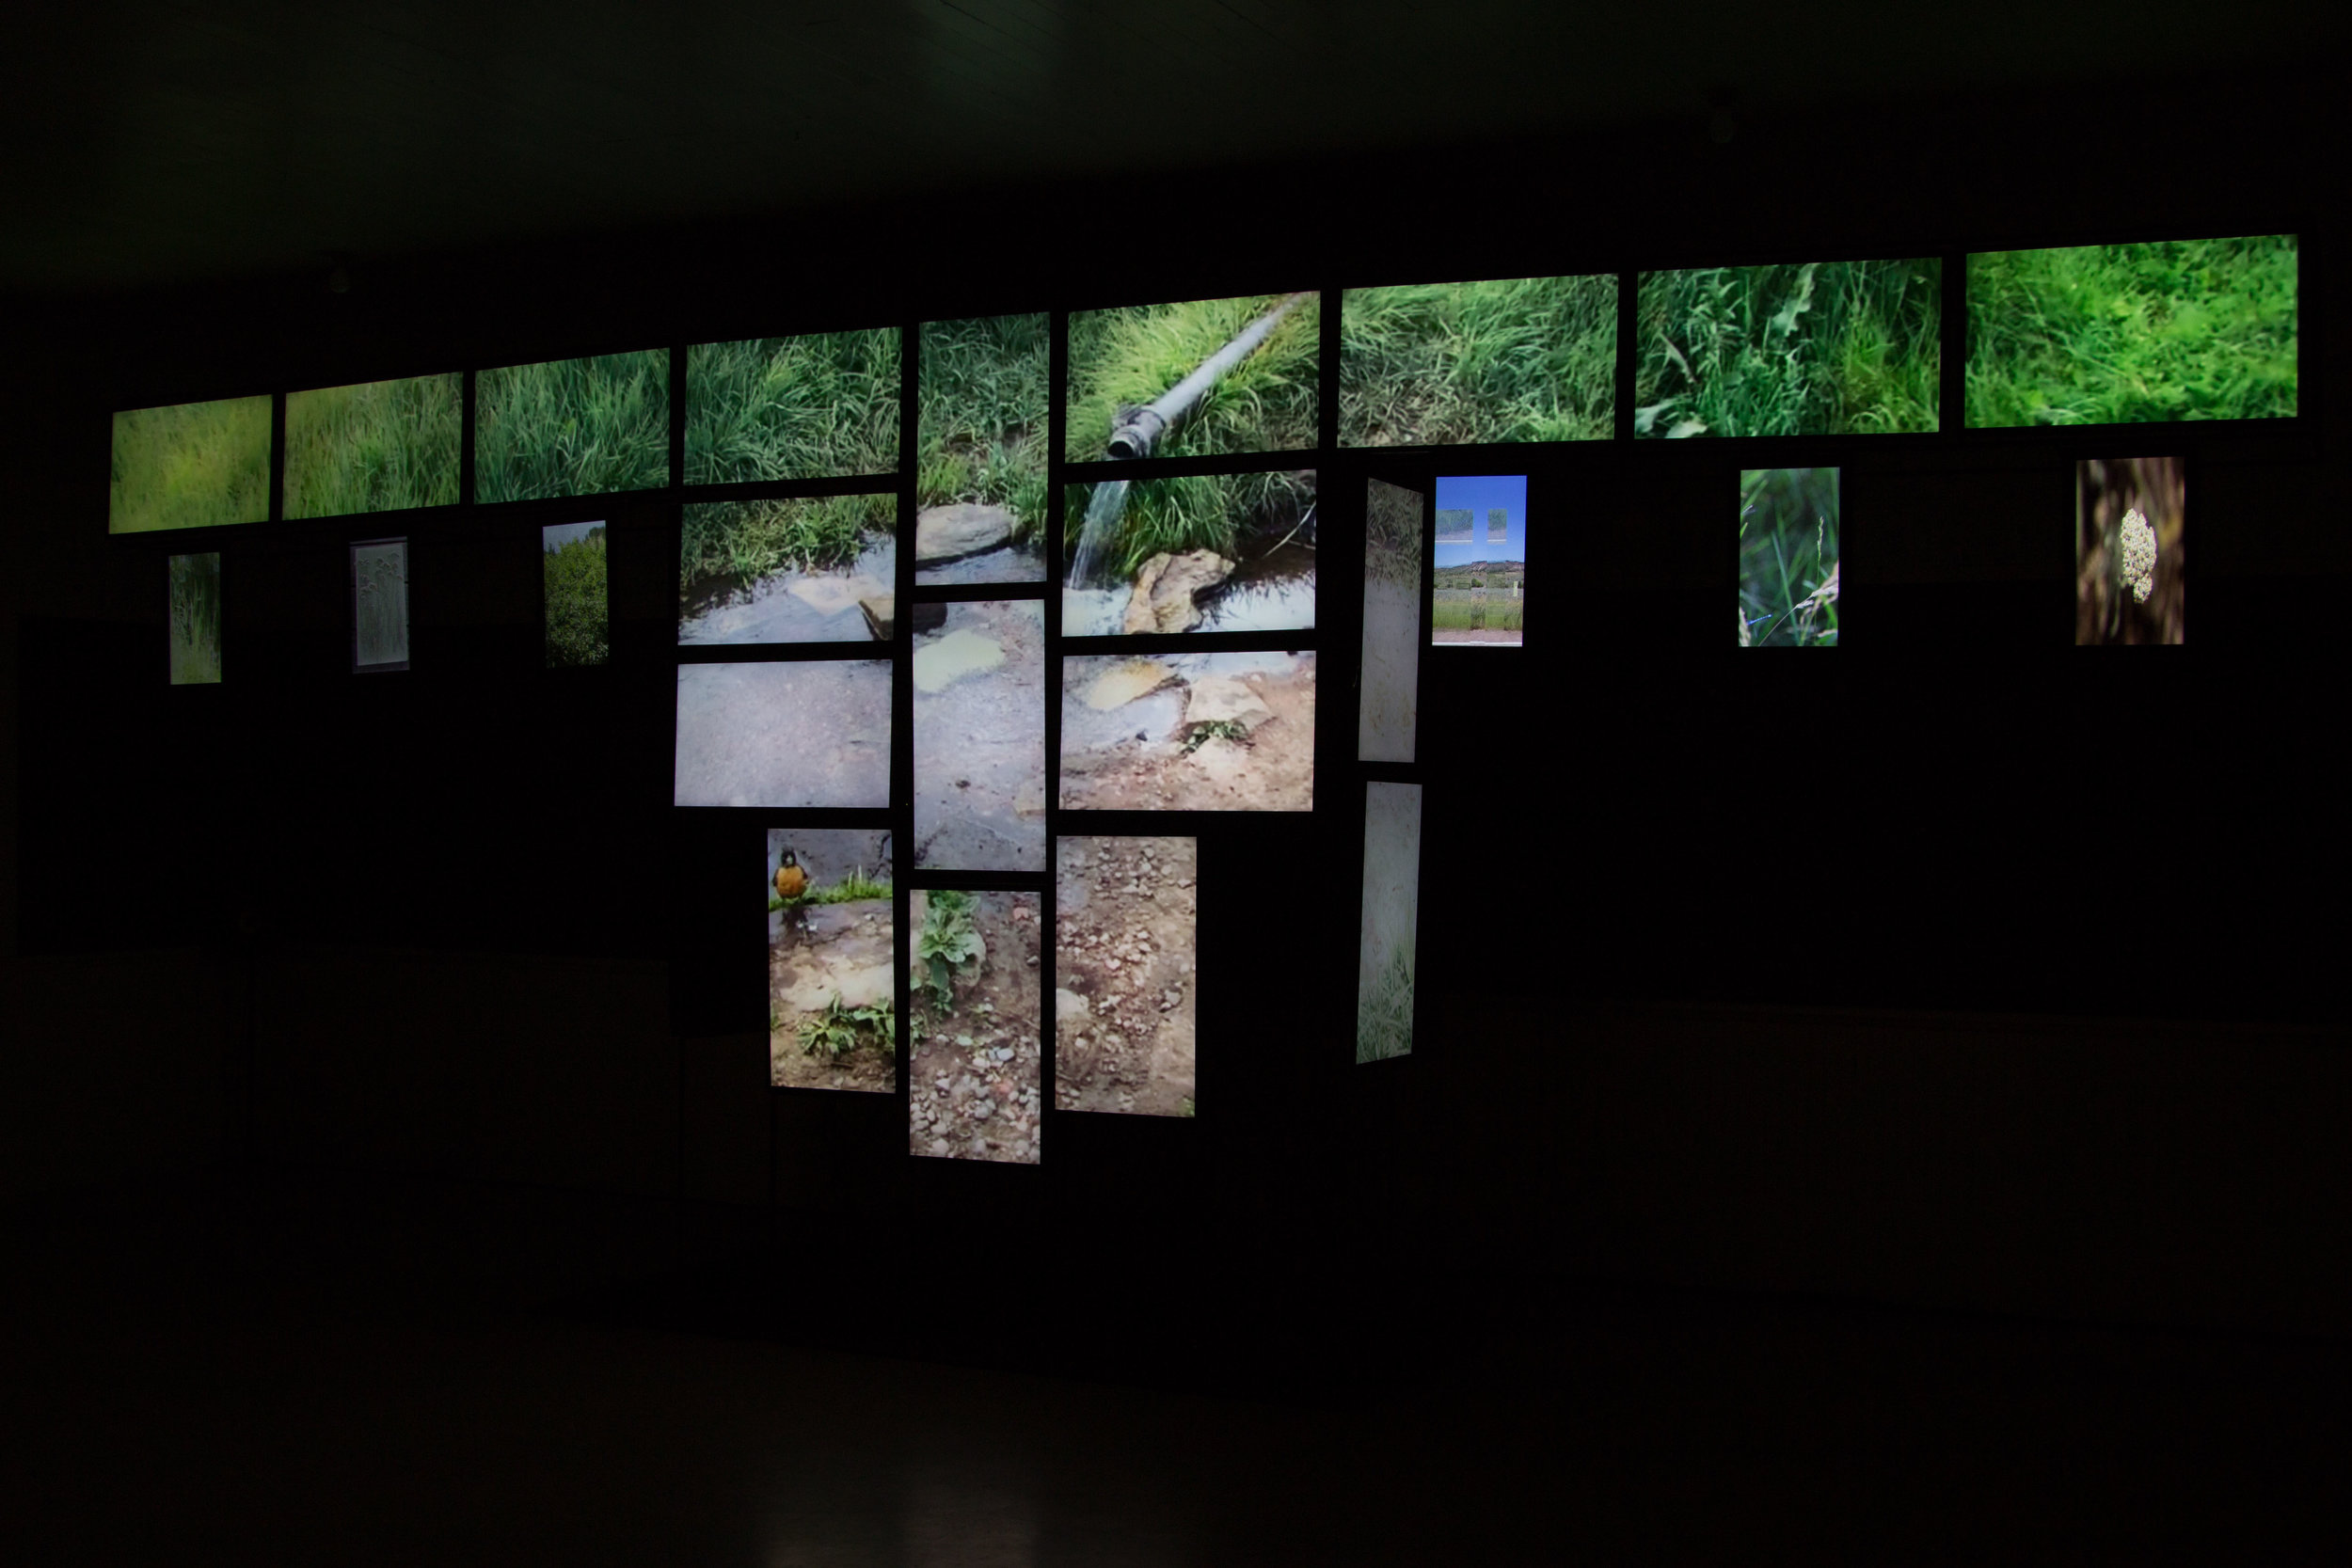 Northern Cheyenne artist Bently Spang's video installation of  War Shirt #6 - Waterways  takes the form of a monumental Plains Indian was shirt using 26 video monitors.